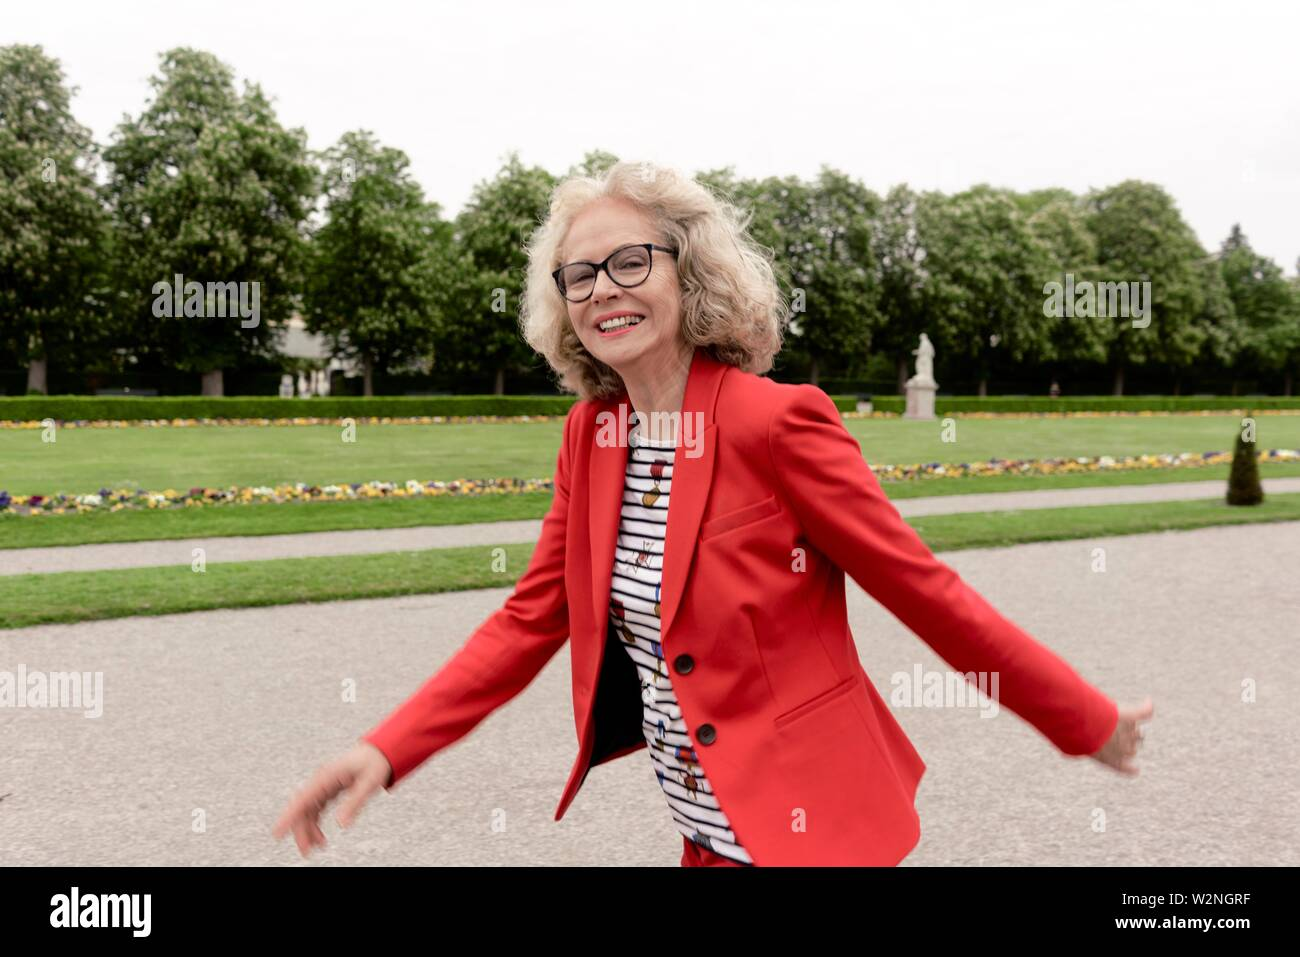 happy senior woman (67 years old) walking in park, in Nymphenburg, Munich, Germany. - Stock Image